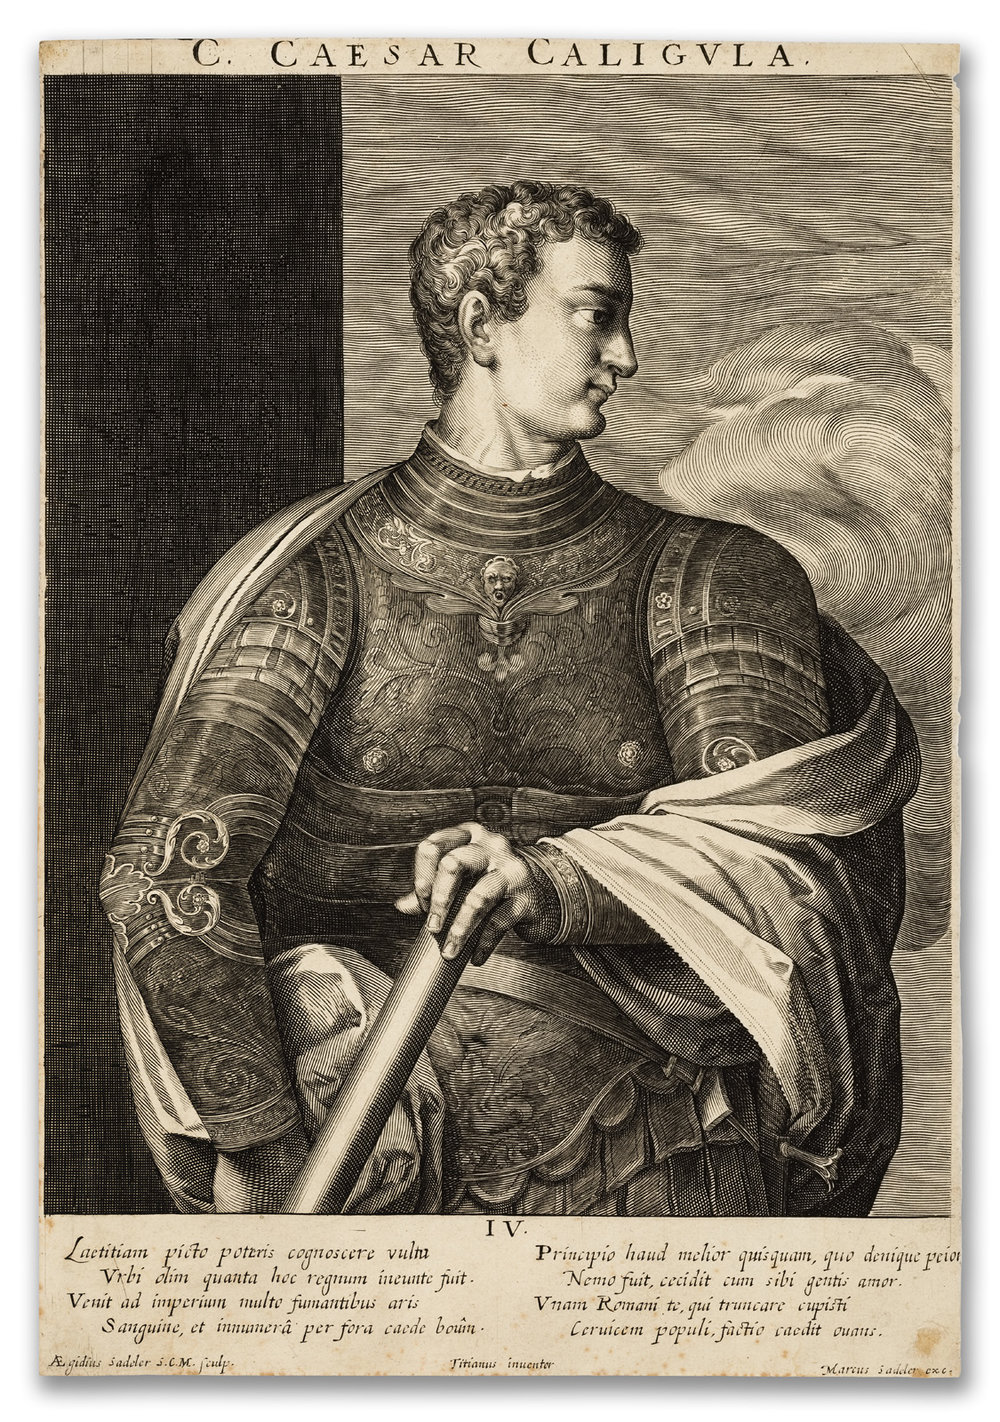 Aegidius Sadeler II (1570-1629), Portrait of Caesar Caligula (after Titian), c.1600.